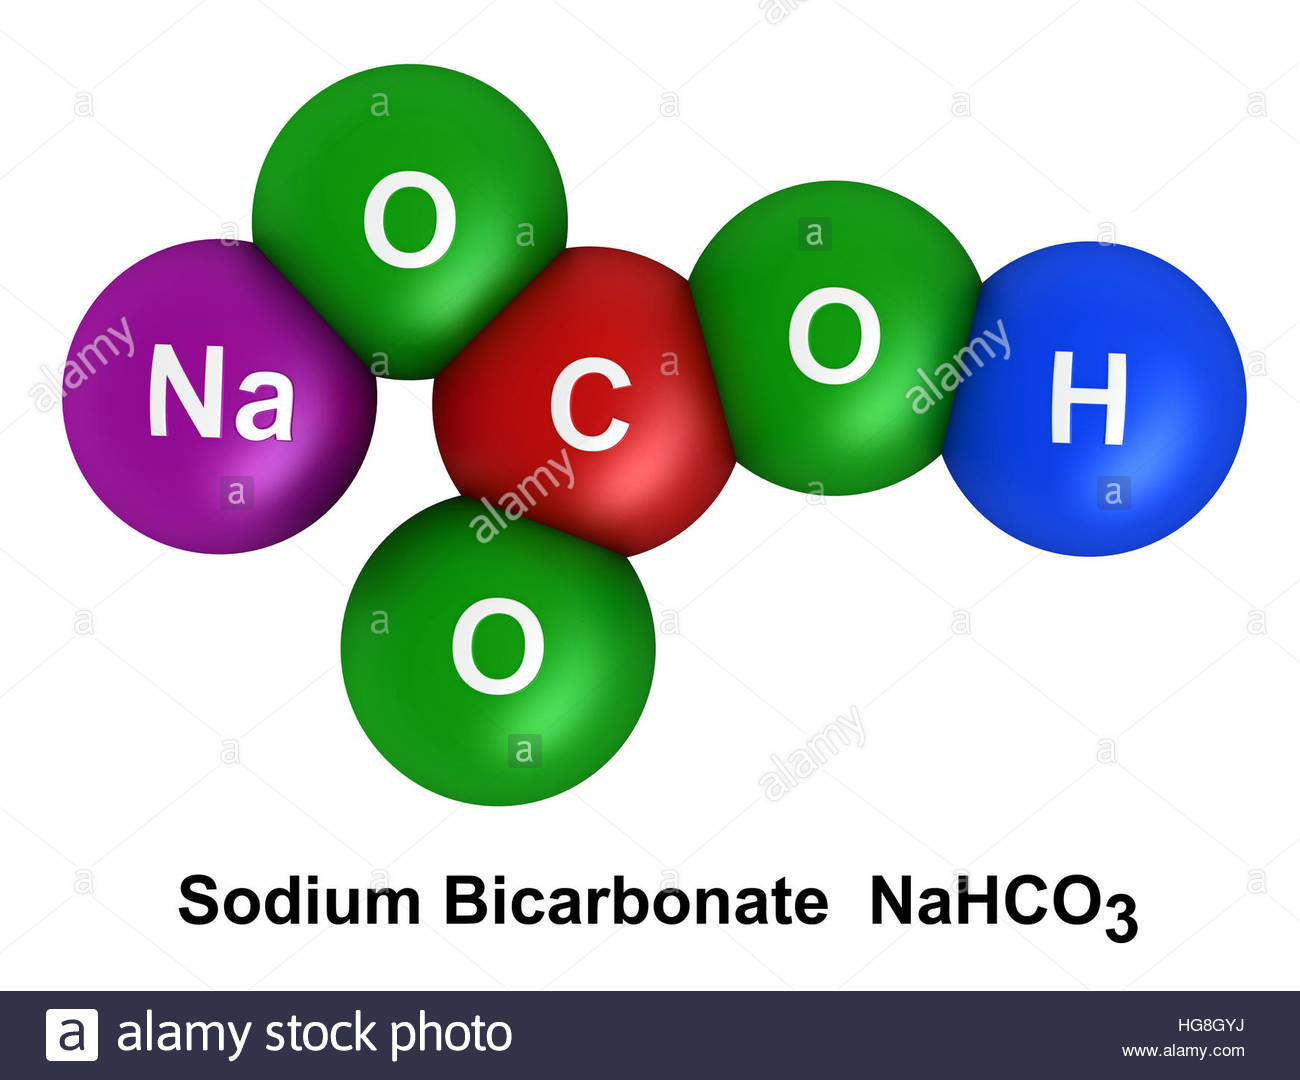 Calcium Bicarbonate clipart #10, Download drawings